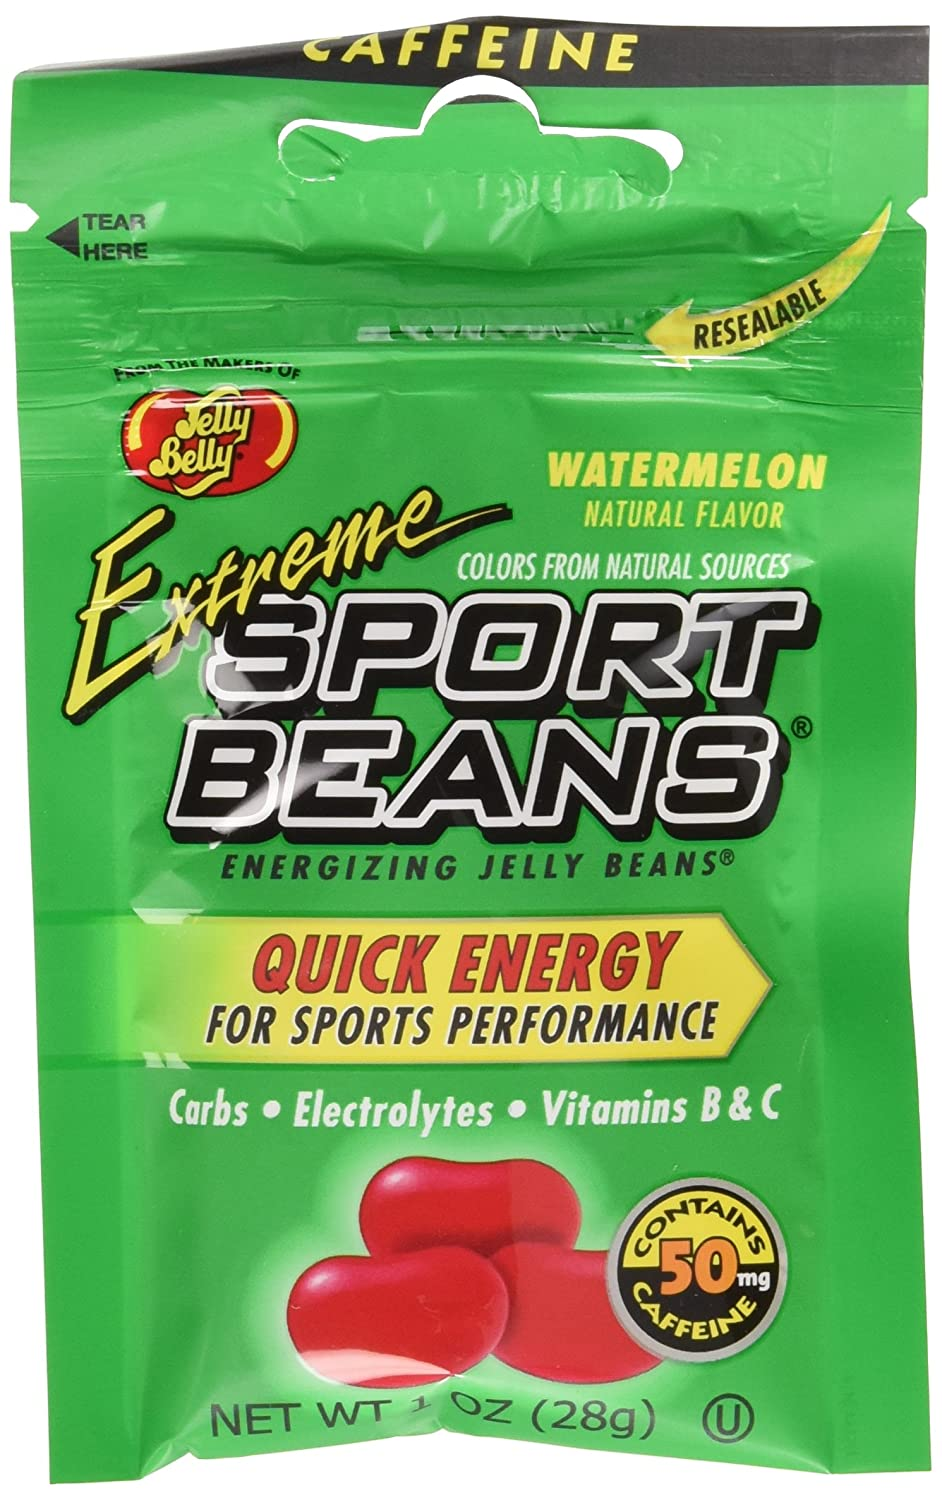 Extreme Sports Beans Jelly Belly Watermelon 24 pack